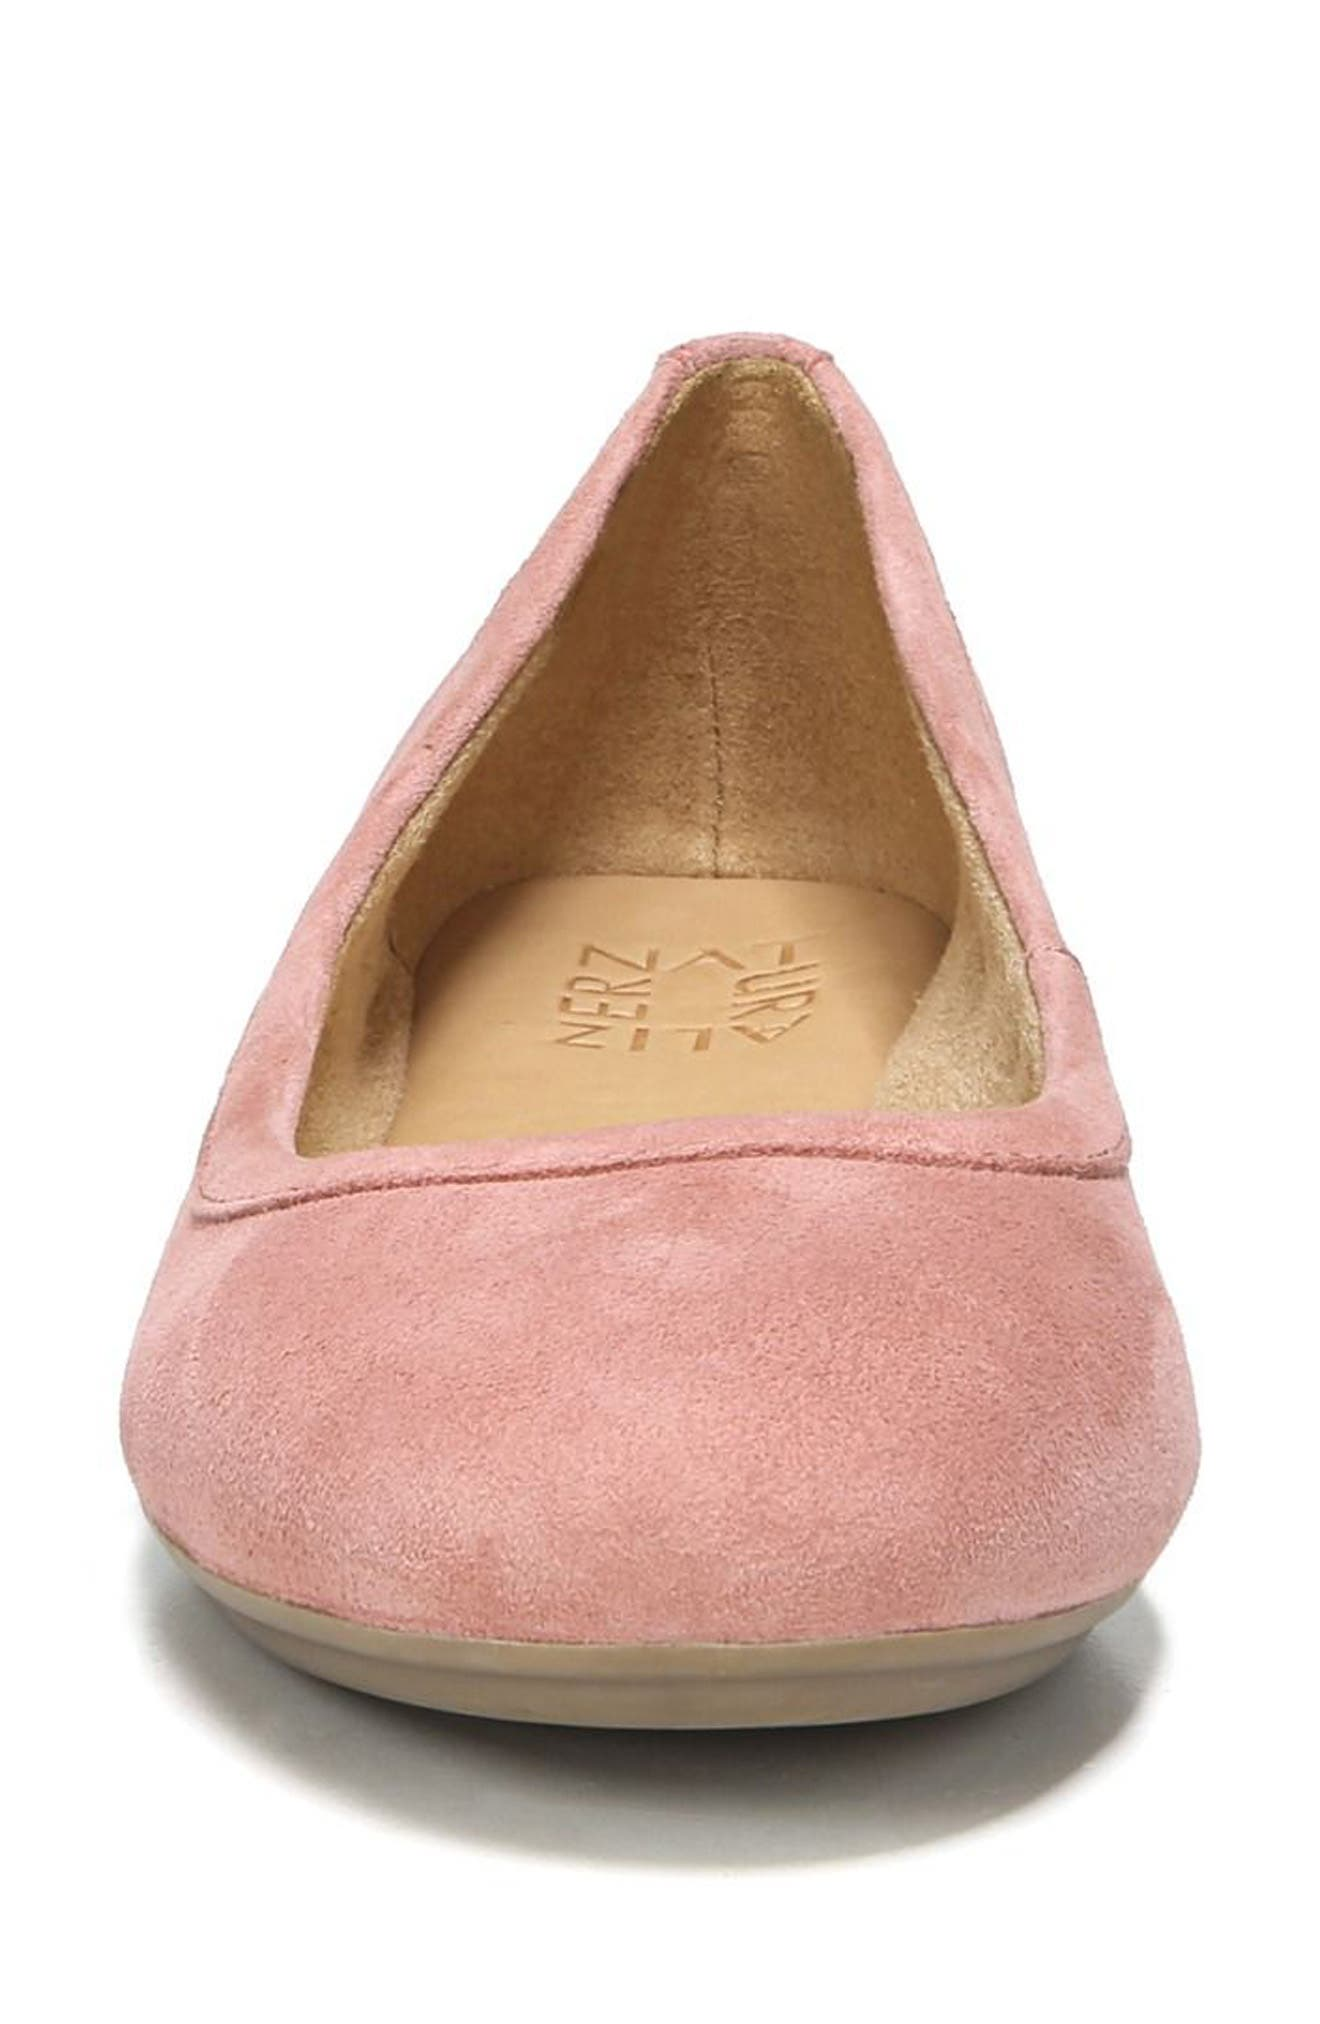 NATURALIZER, Brittany Ballet Flat, Alternate thumbnail 4, color, PEONY PINK SUEDE